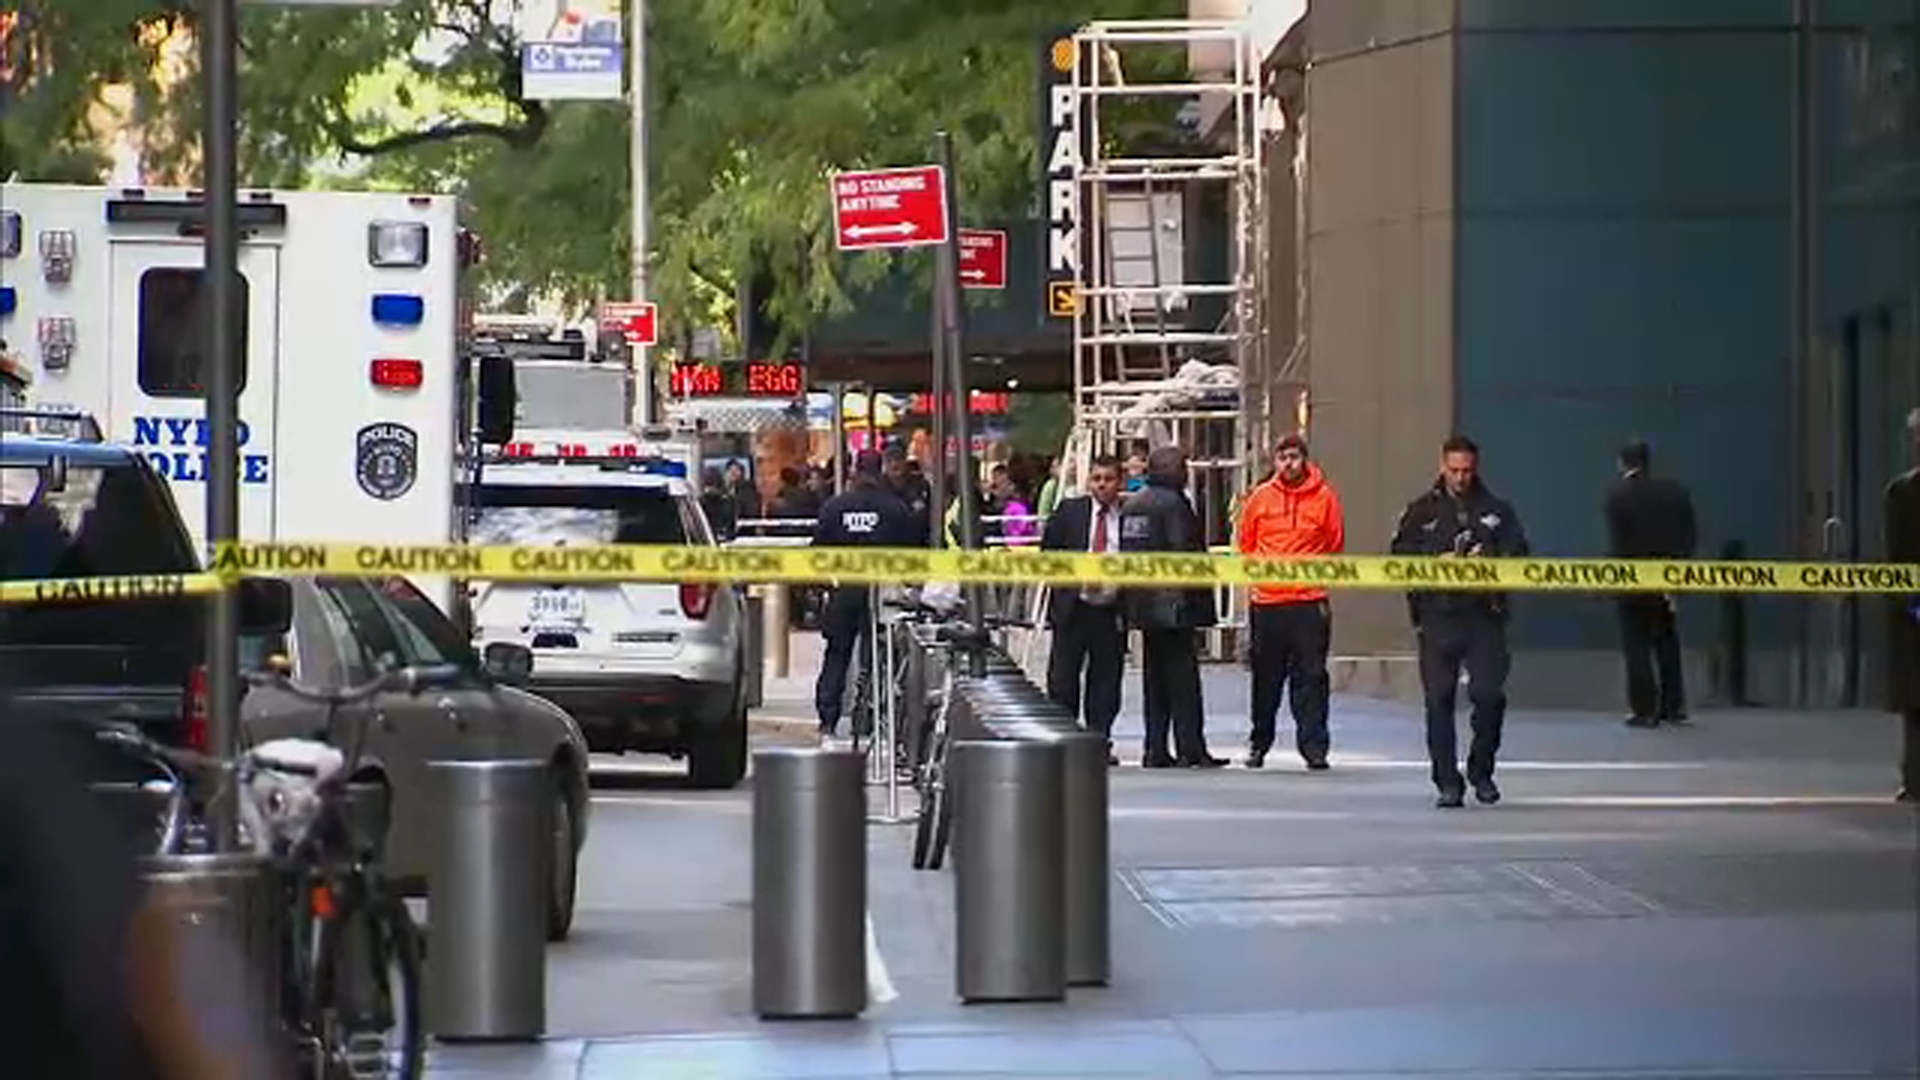 "<div class=""meta image-caption""><div class=""origin-logo origin-image none""><span>none</span></div><span class=""caption-text"">Authorities are shown on the scene of a suspicious package near the CNN building in New York.</span></div>"